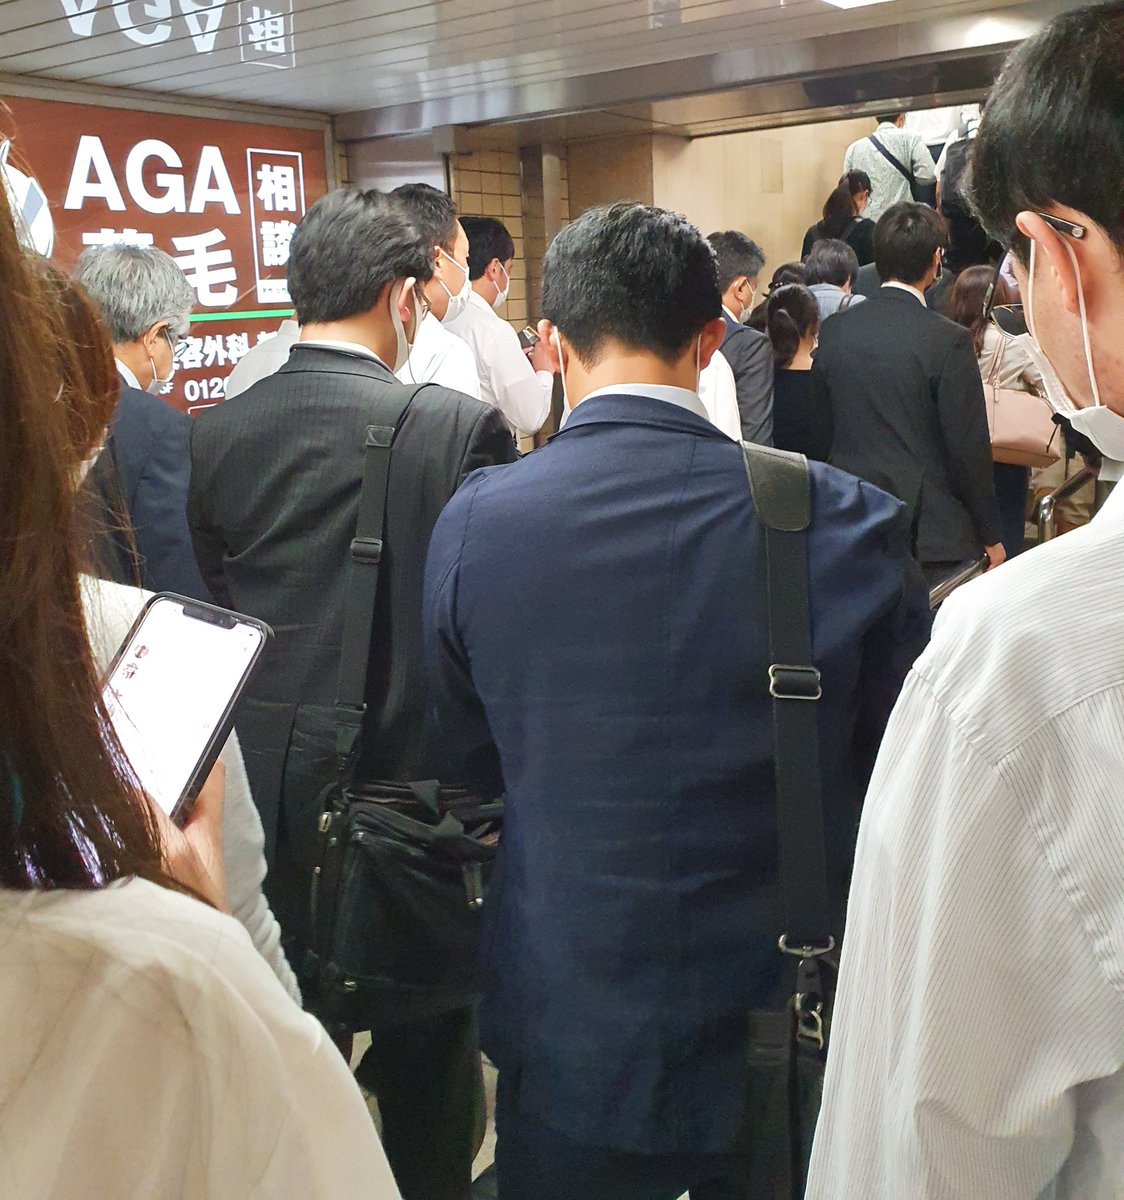 State of emergency lifted in Tokyo... All back to normal?  #Japan  #COVID19 #RushHour pic.twitter.com/xou9jAETPJ